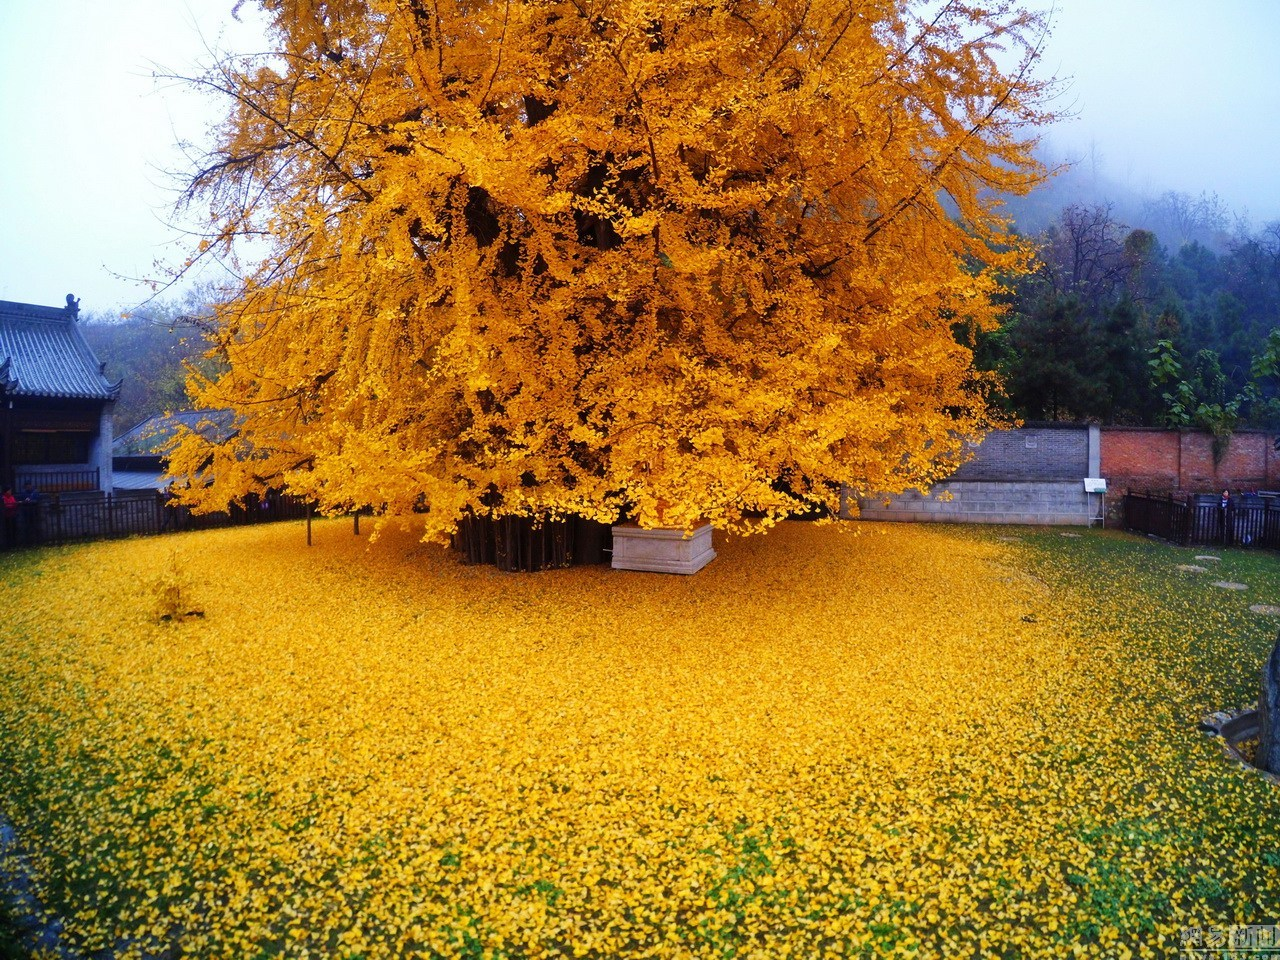 An Ancient Chinese Ginkgo Tree Releases an Ocean of Golden Leaves